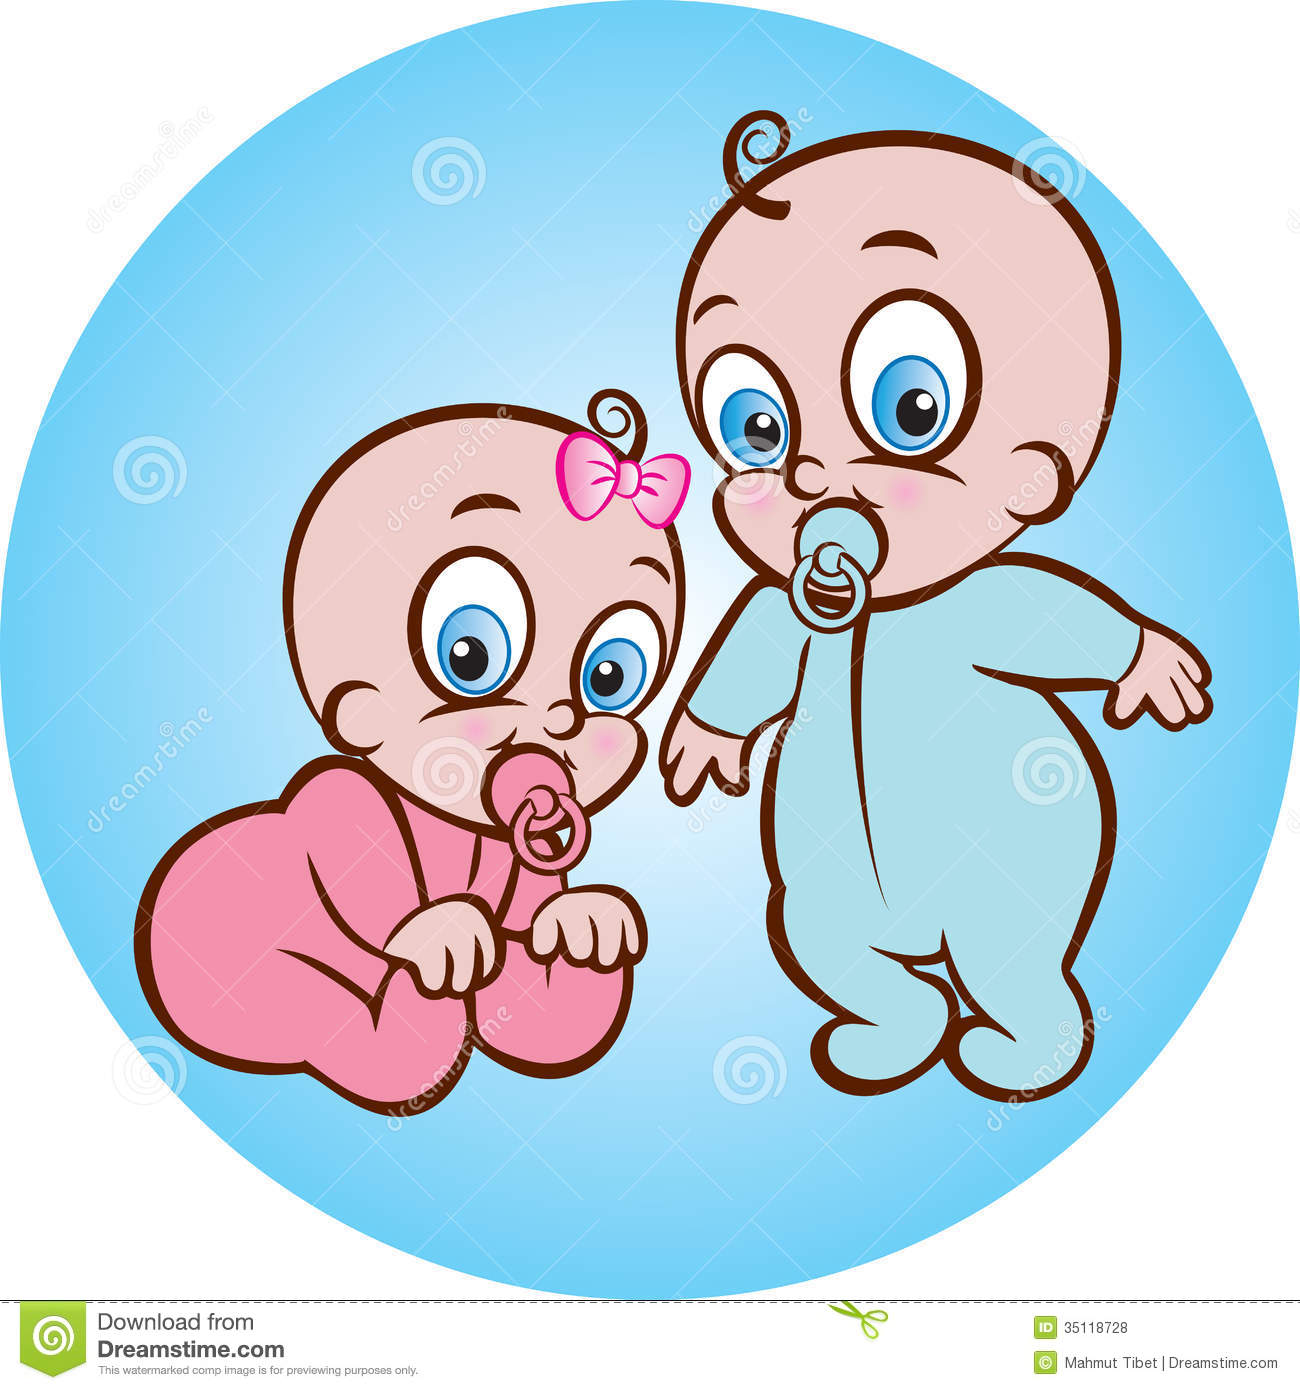 Happy baby boy and girl stock vector. Illustration of little.